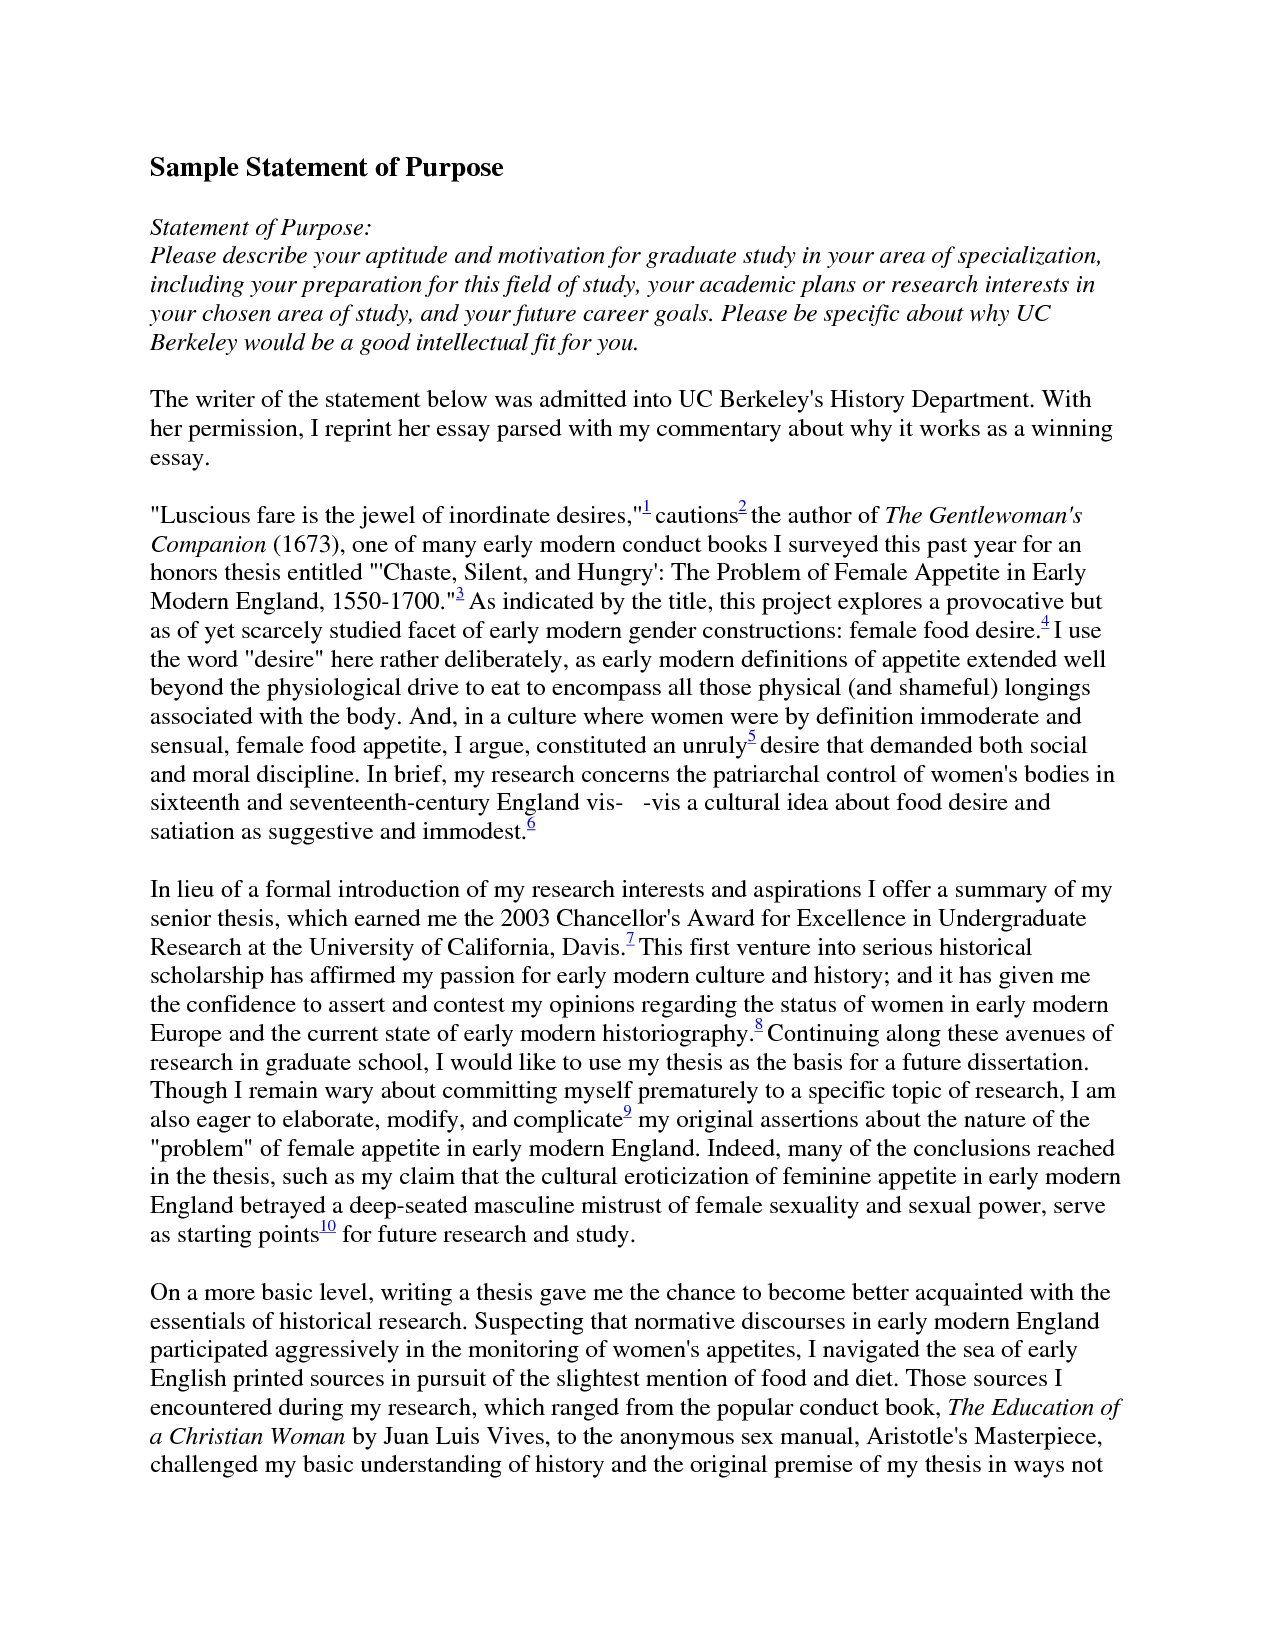 Residency application personal statement. The University of Nebraska ...